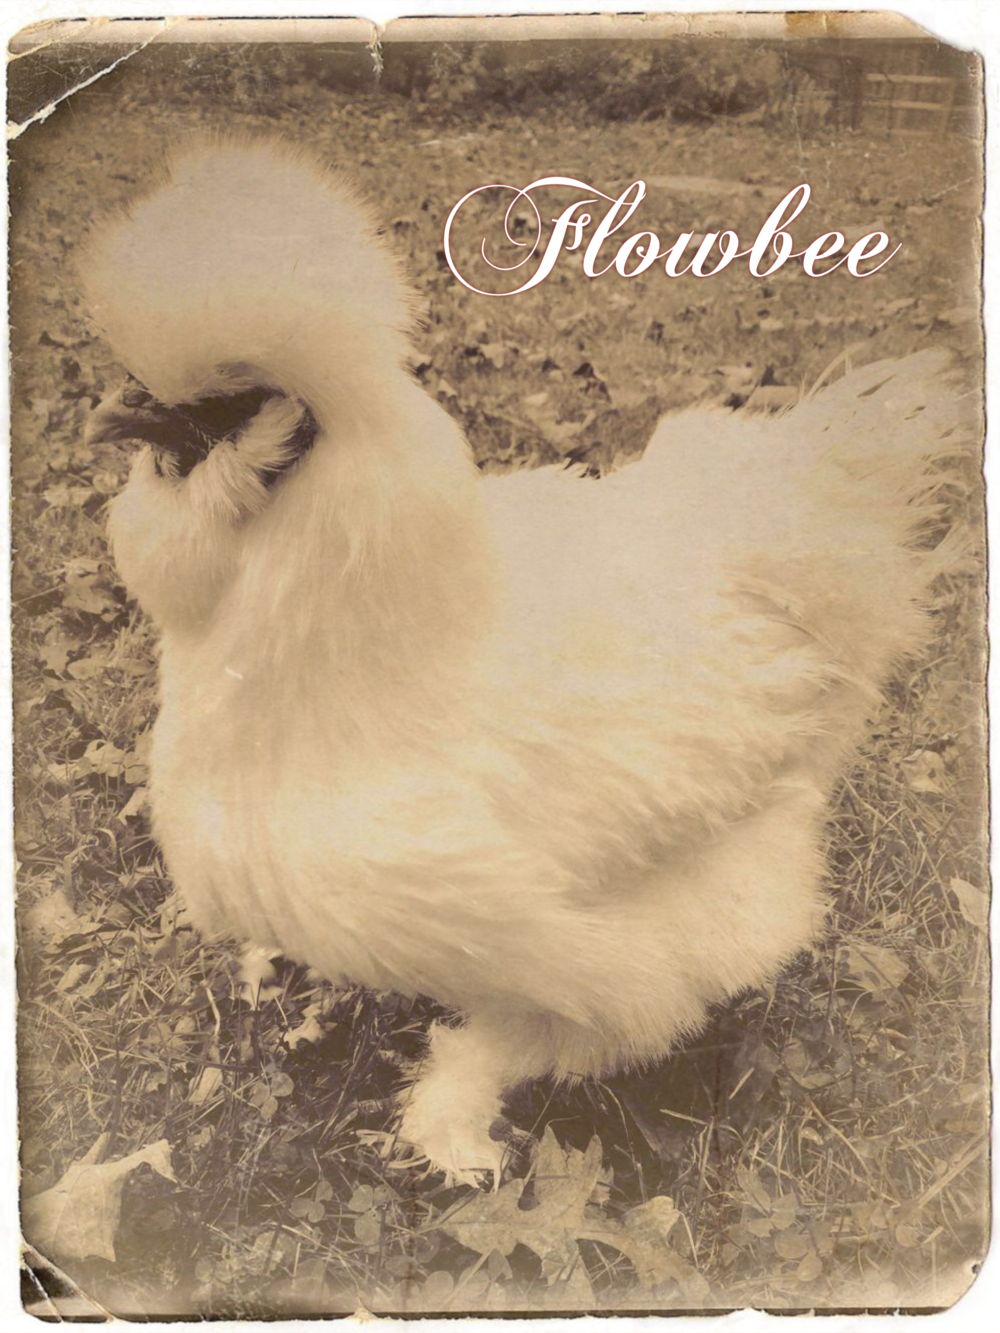 FLOWBEE - the lone survivor spared when a backyard flock was culled.